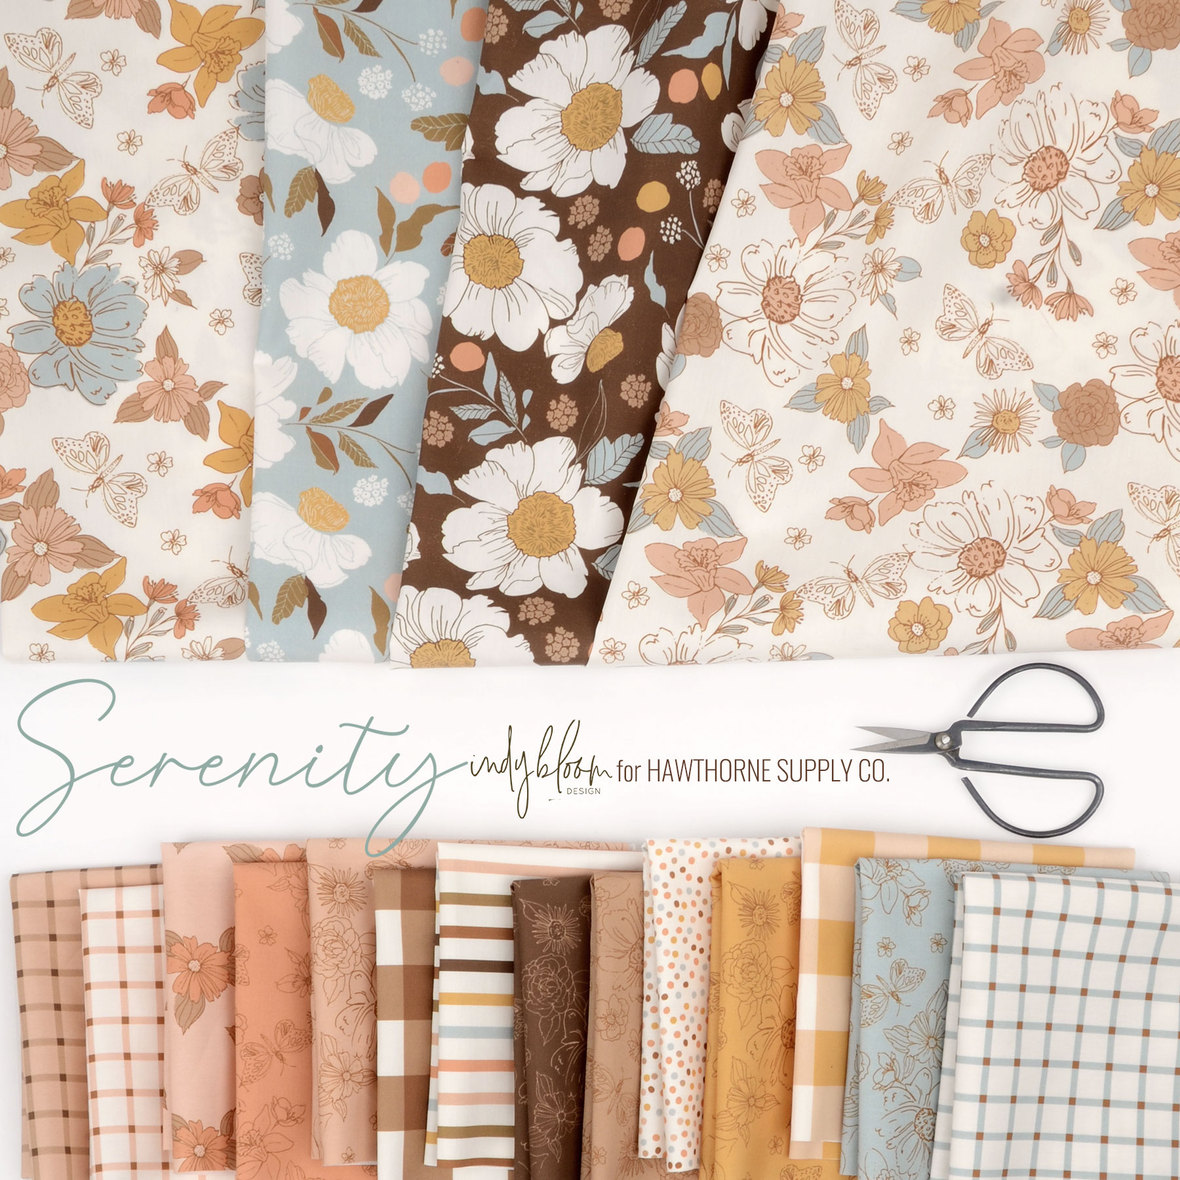 Serenity-Fabric-Indy-Bloom-for-Hawthorne-Supply-Co.